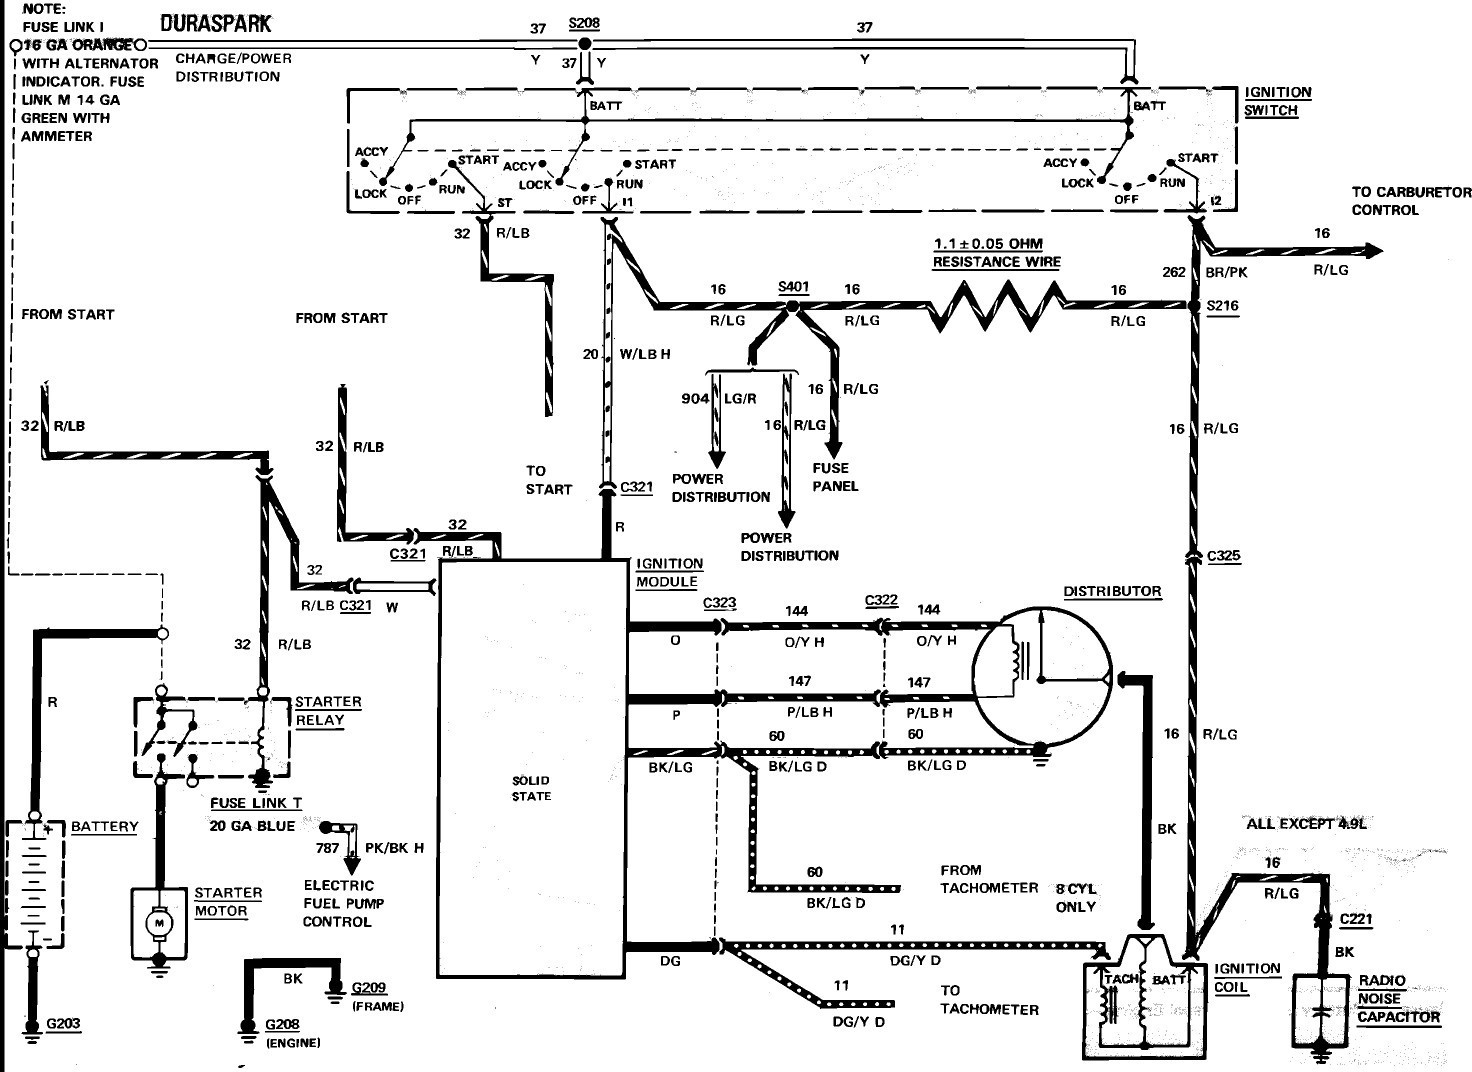 1999 Ford F250 Super Duty Wiring Diagram from static-resources.imageservice.cloud